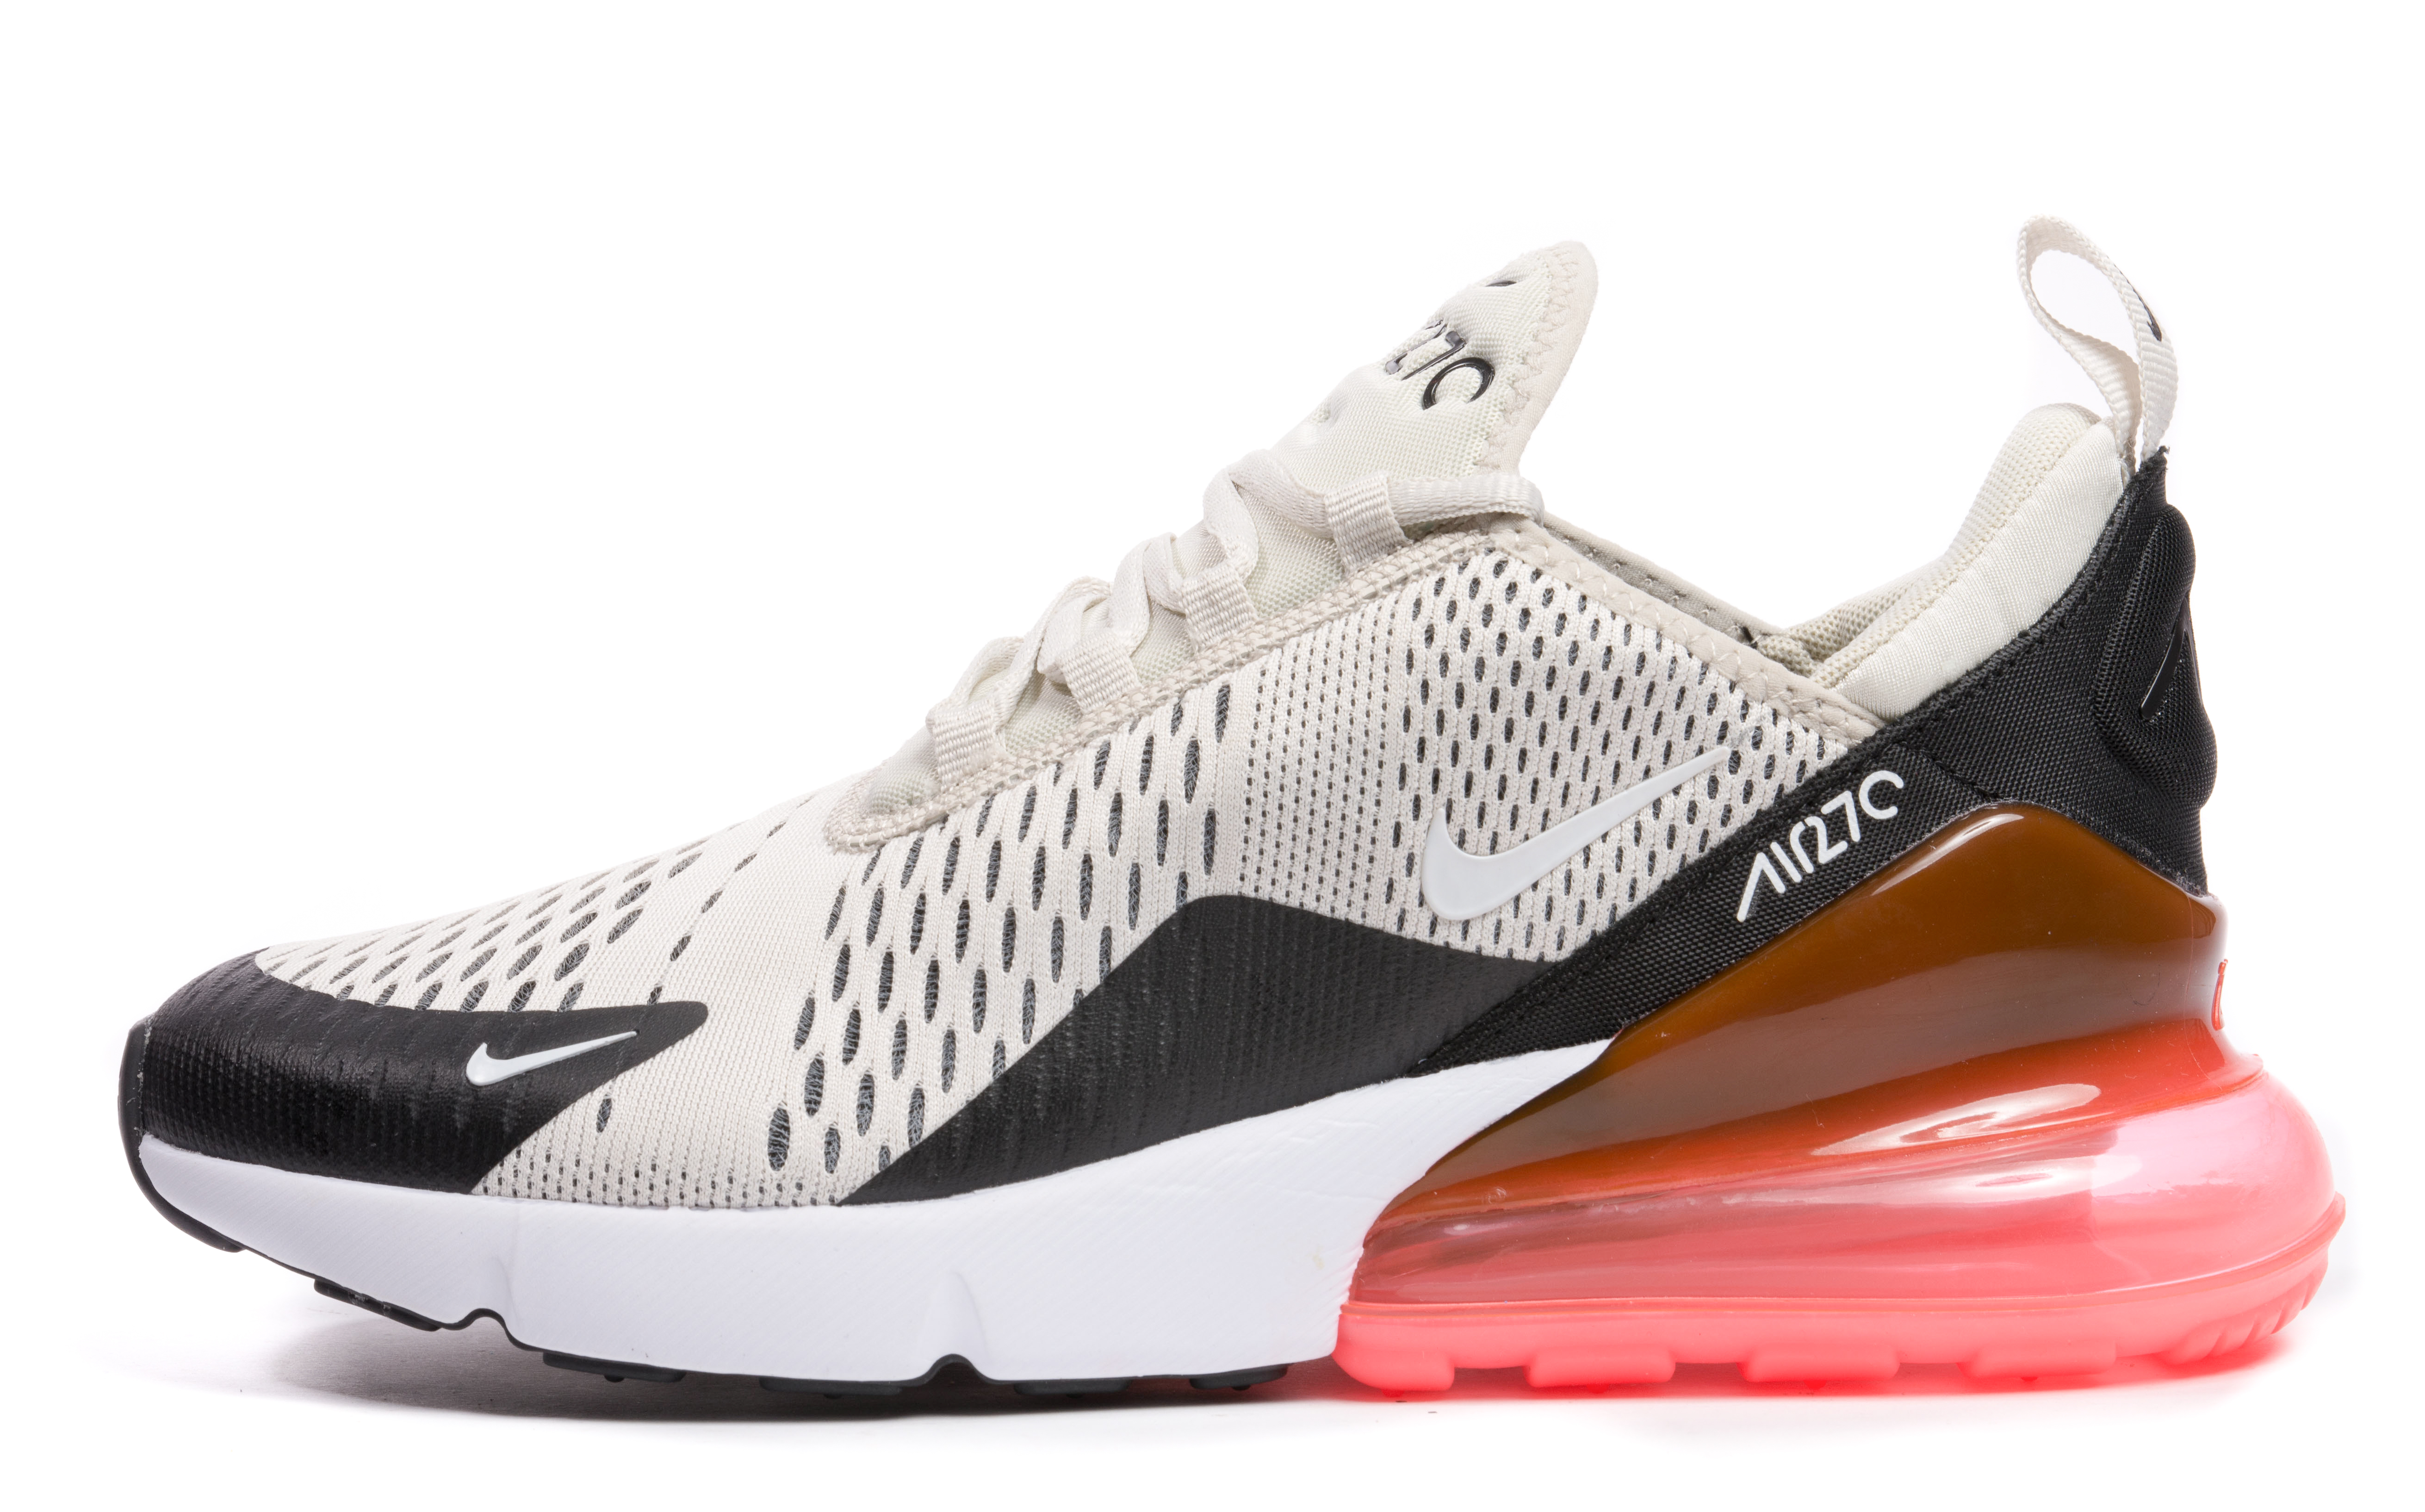 Air Max 270 'Light Bone' AH8050 003